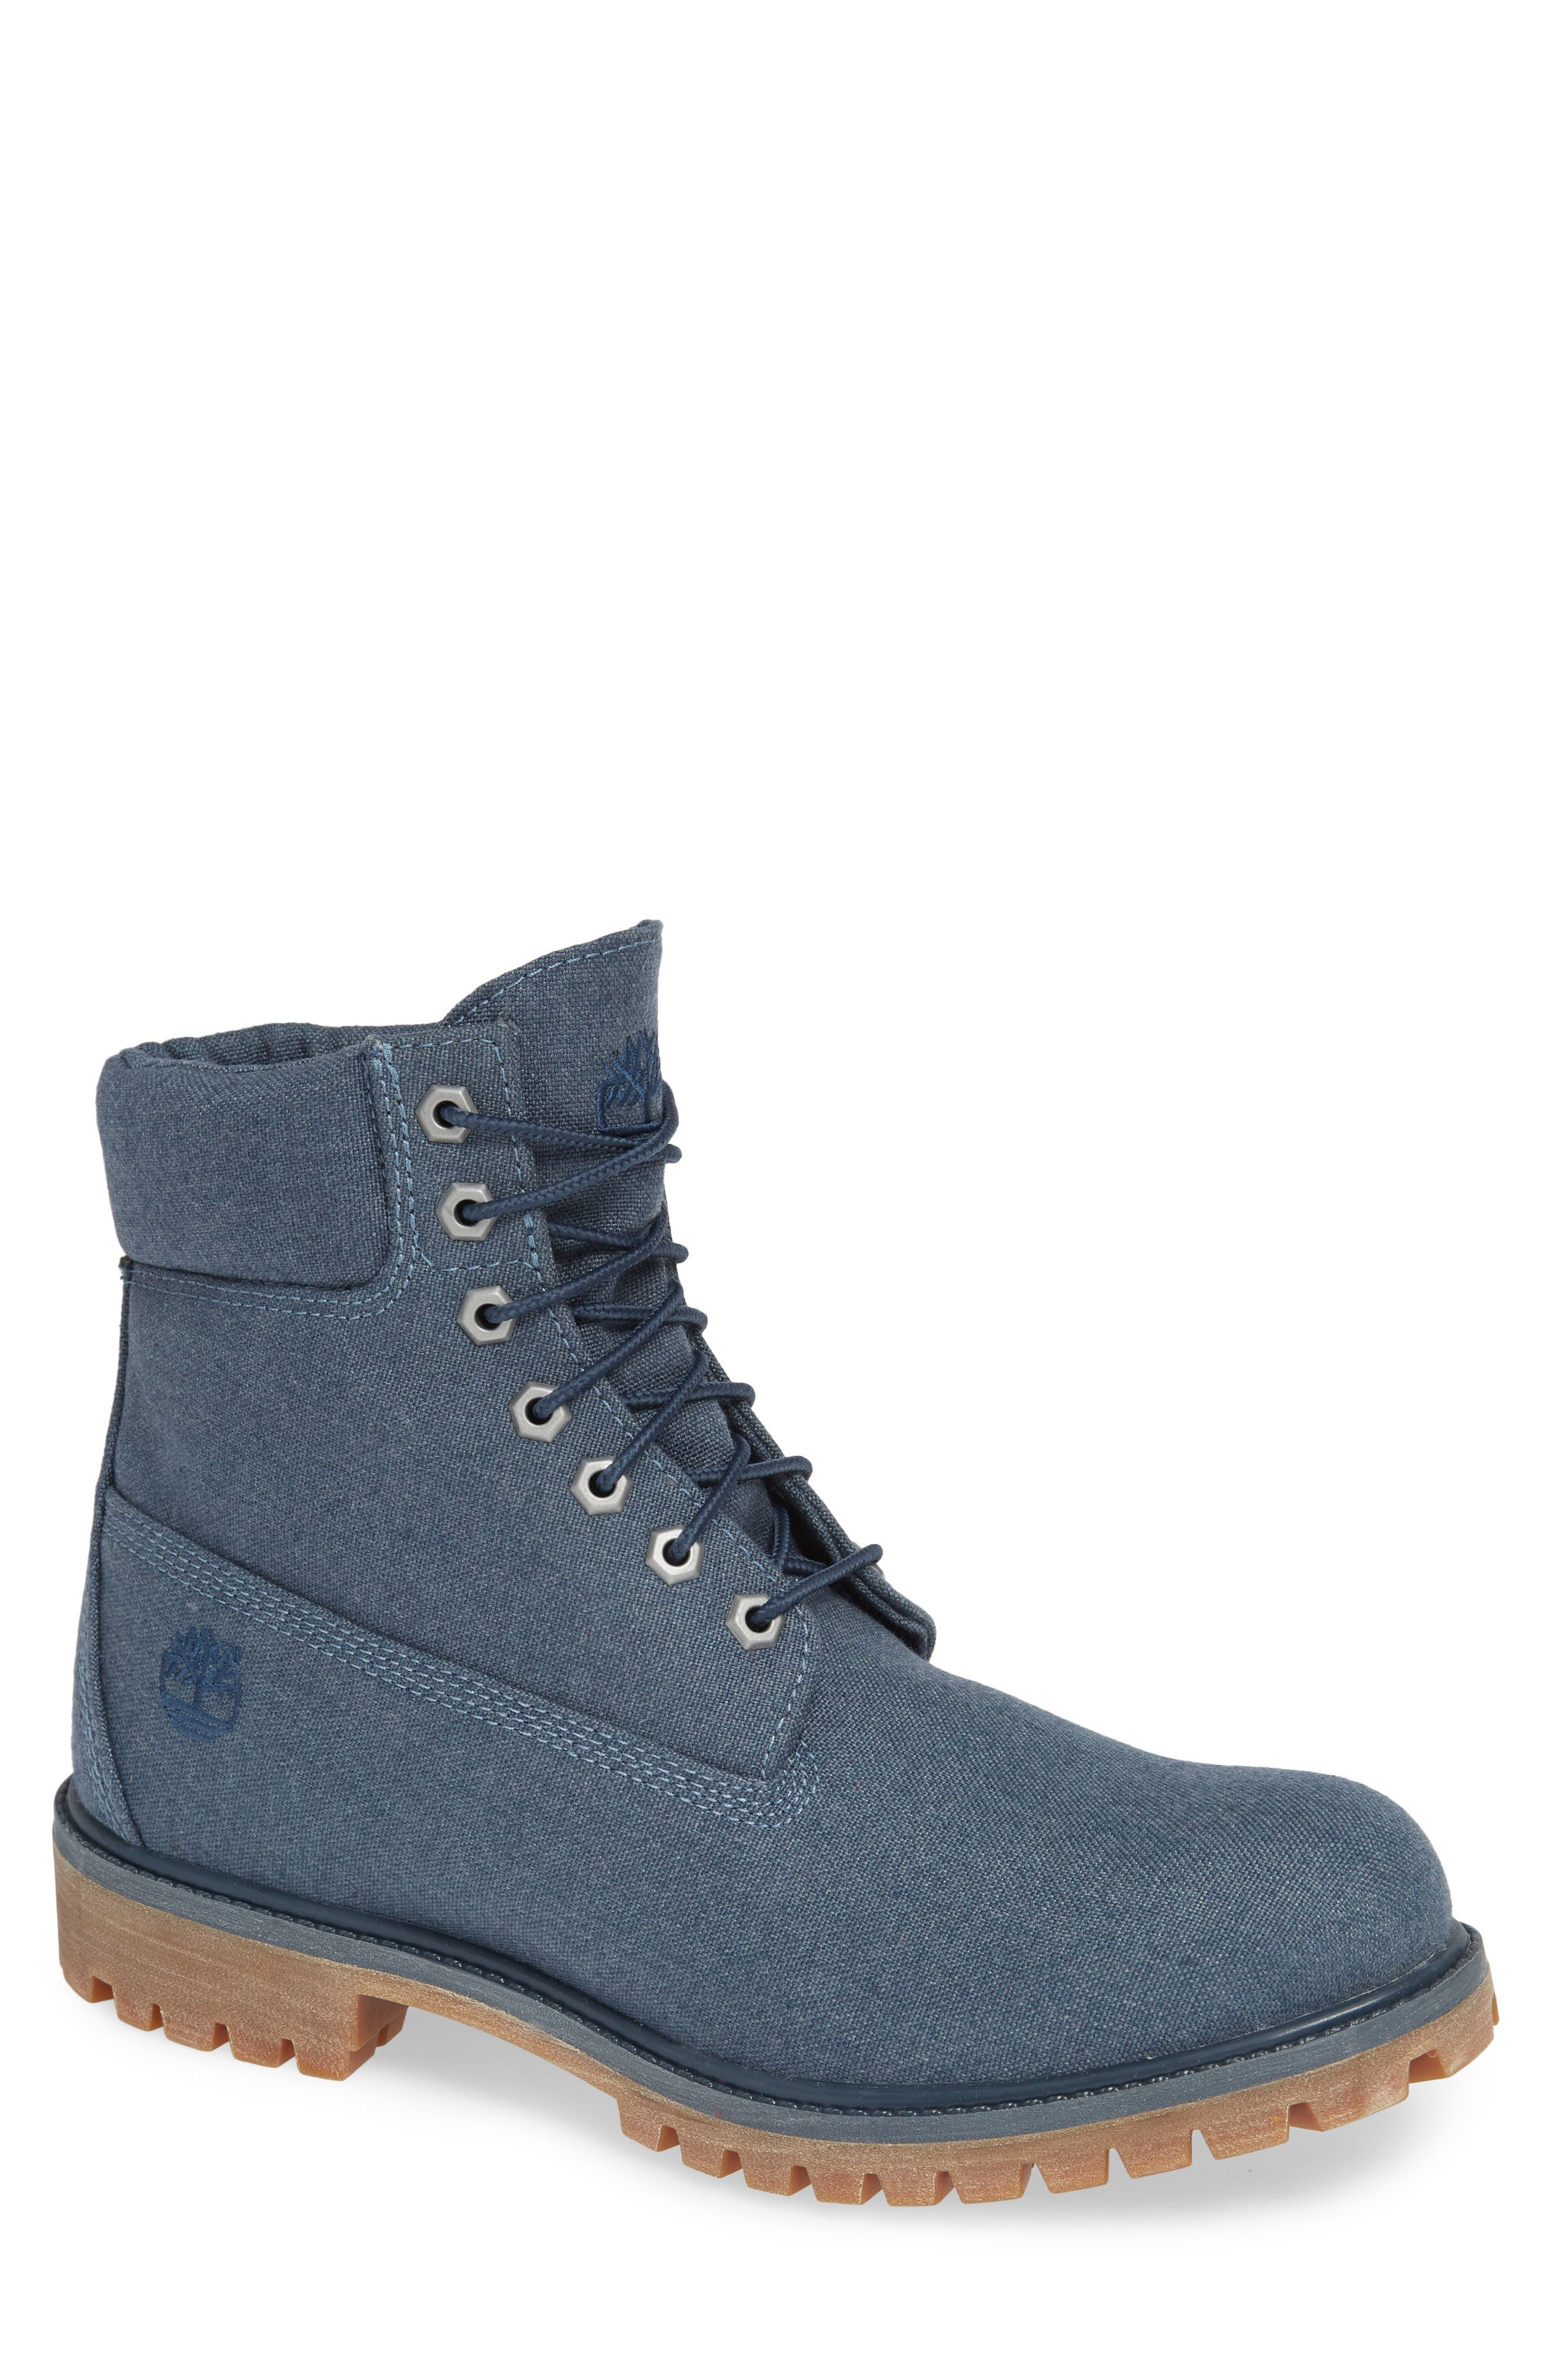 Premium Plain Toe Boot,                         Main,                         color, MIDNIGHT NAVY THREAD